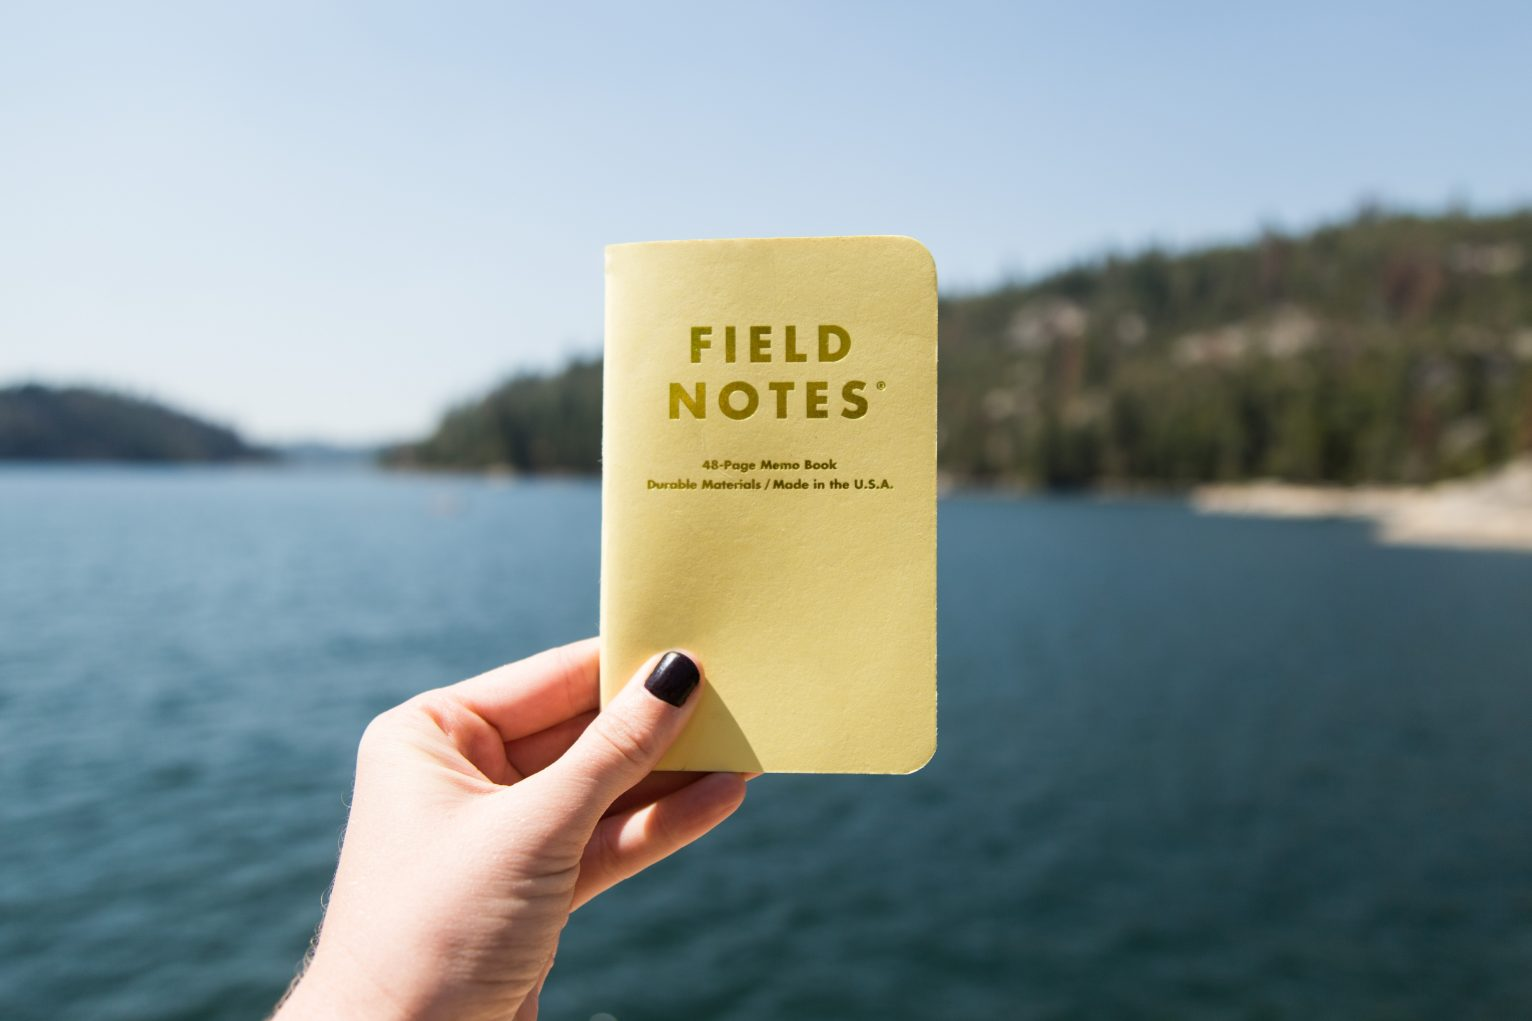 Field Notes at the shore